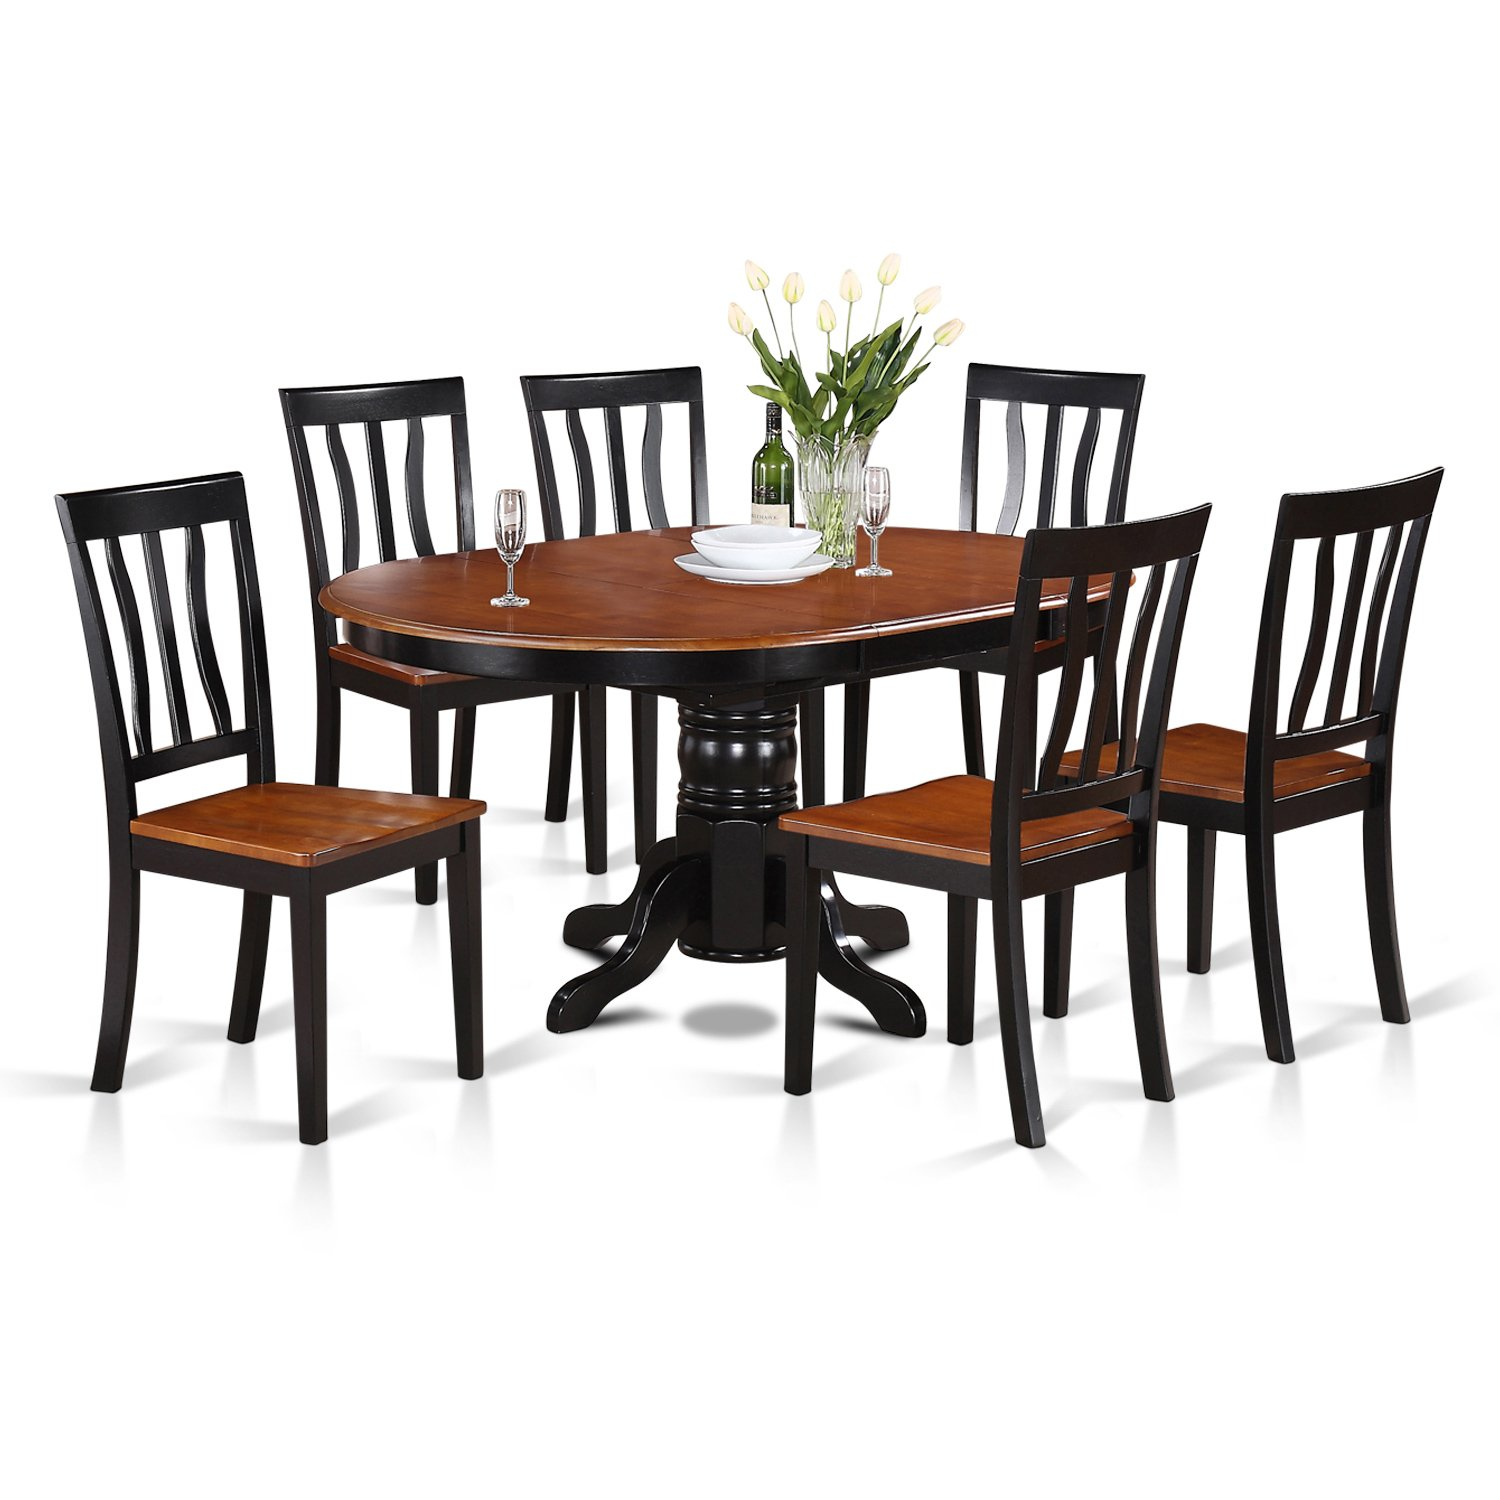 Amazon com east west furniture avat7 blk w 7 piece dining table set kitchen dining